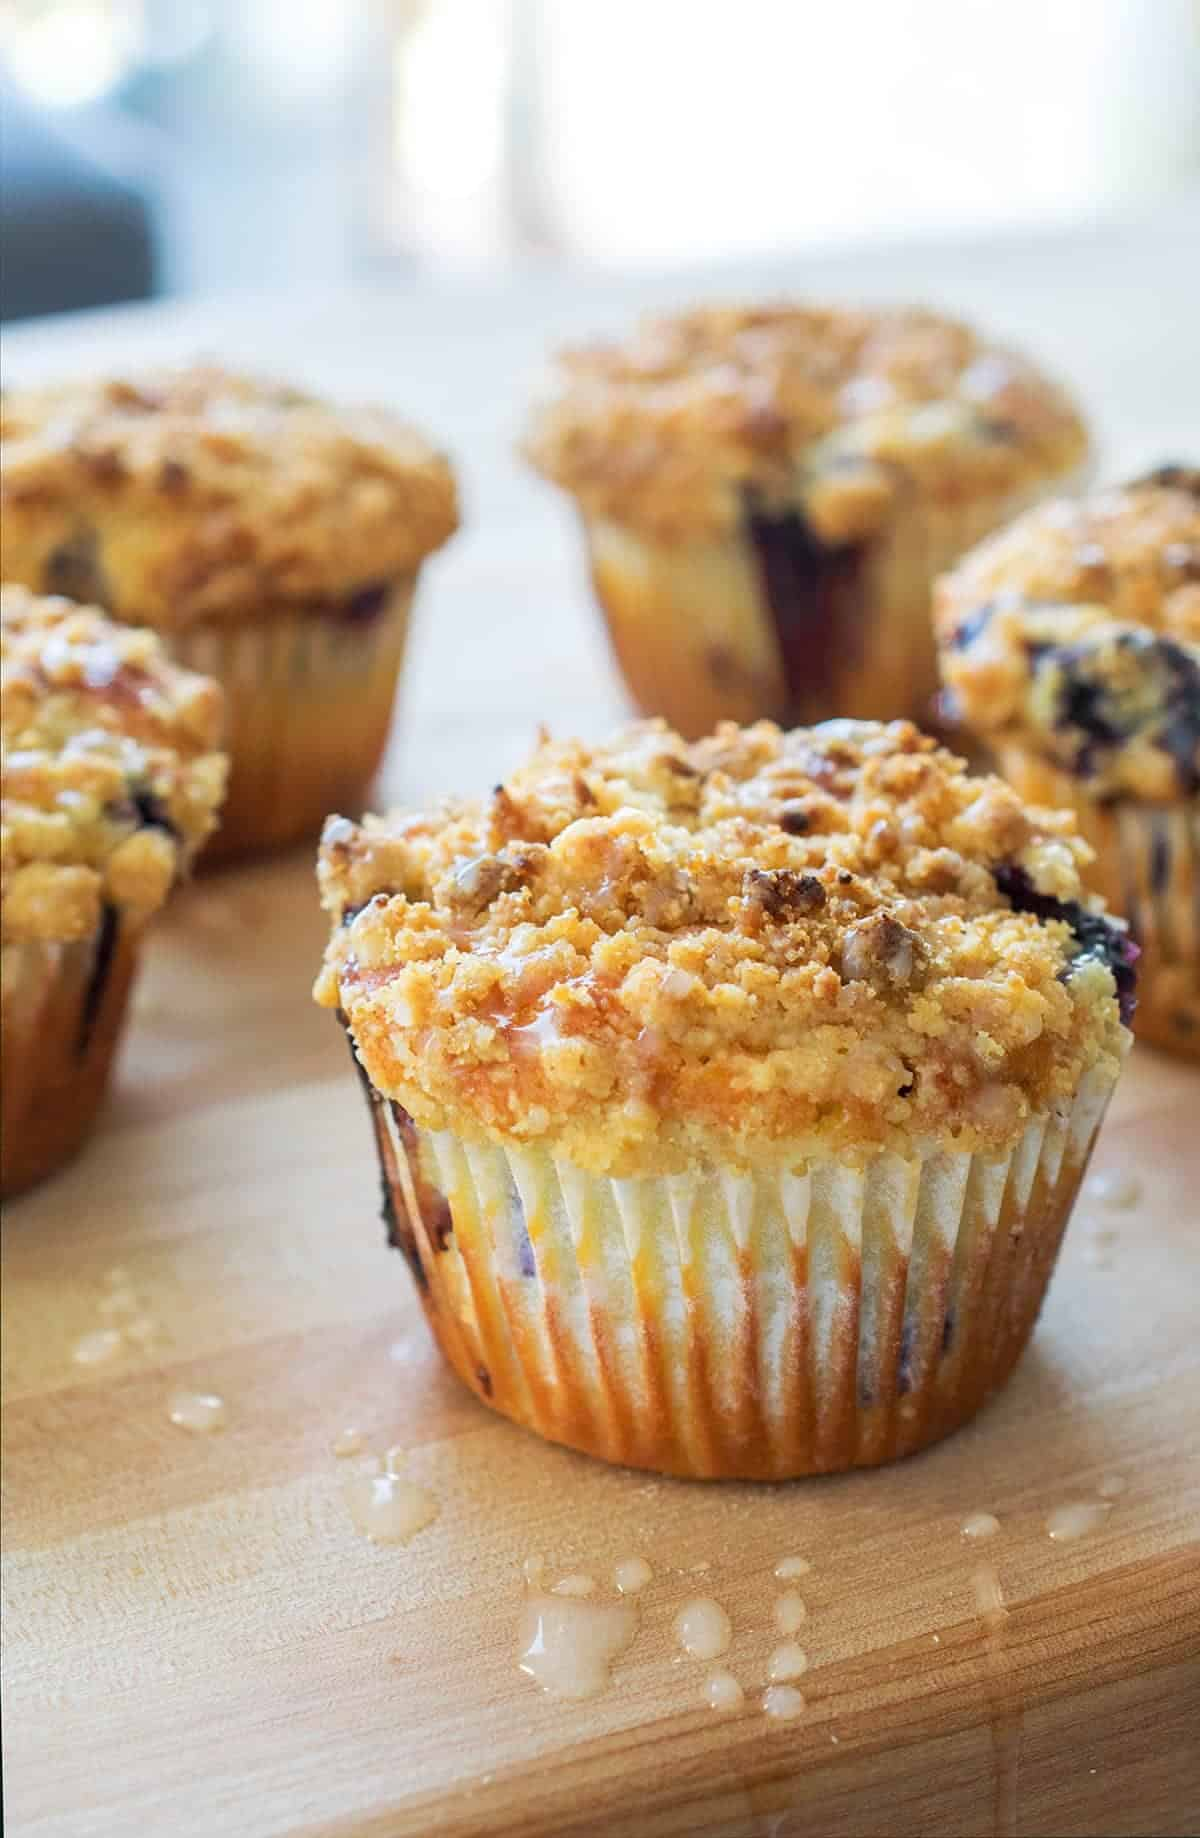 Ultimate lemon blueberry muffins with glazed crumb topping on wood surface with glaze drips.